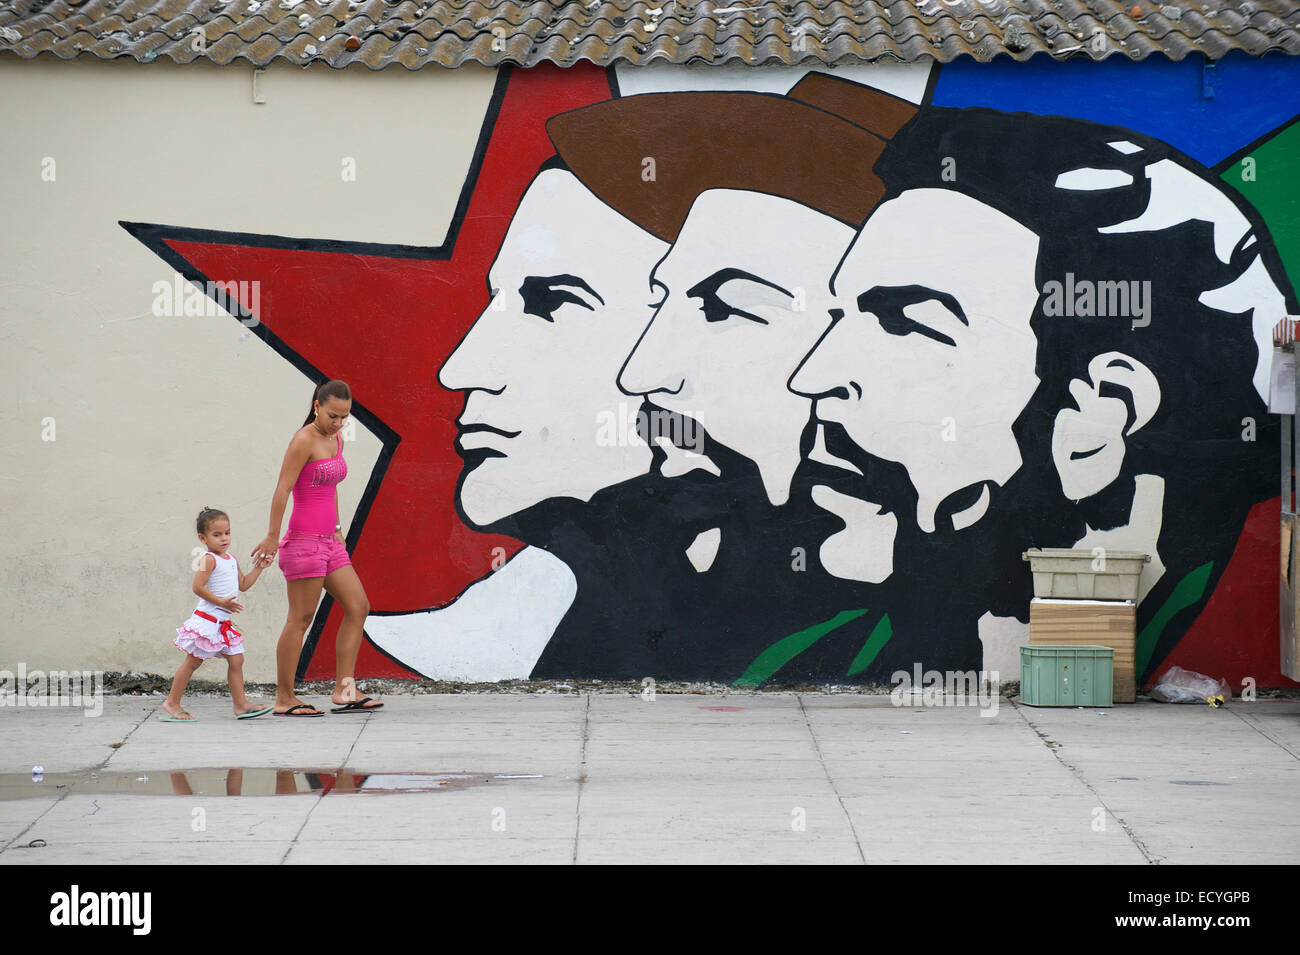 HAVANA, CUBA - MAY 16, 2011: Cuban woman and child walk in front of billboard featuring Mella, Cienfuegos, and Guevara. - Stock Image